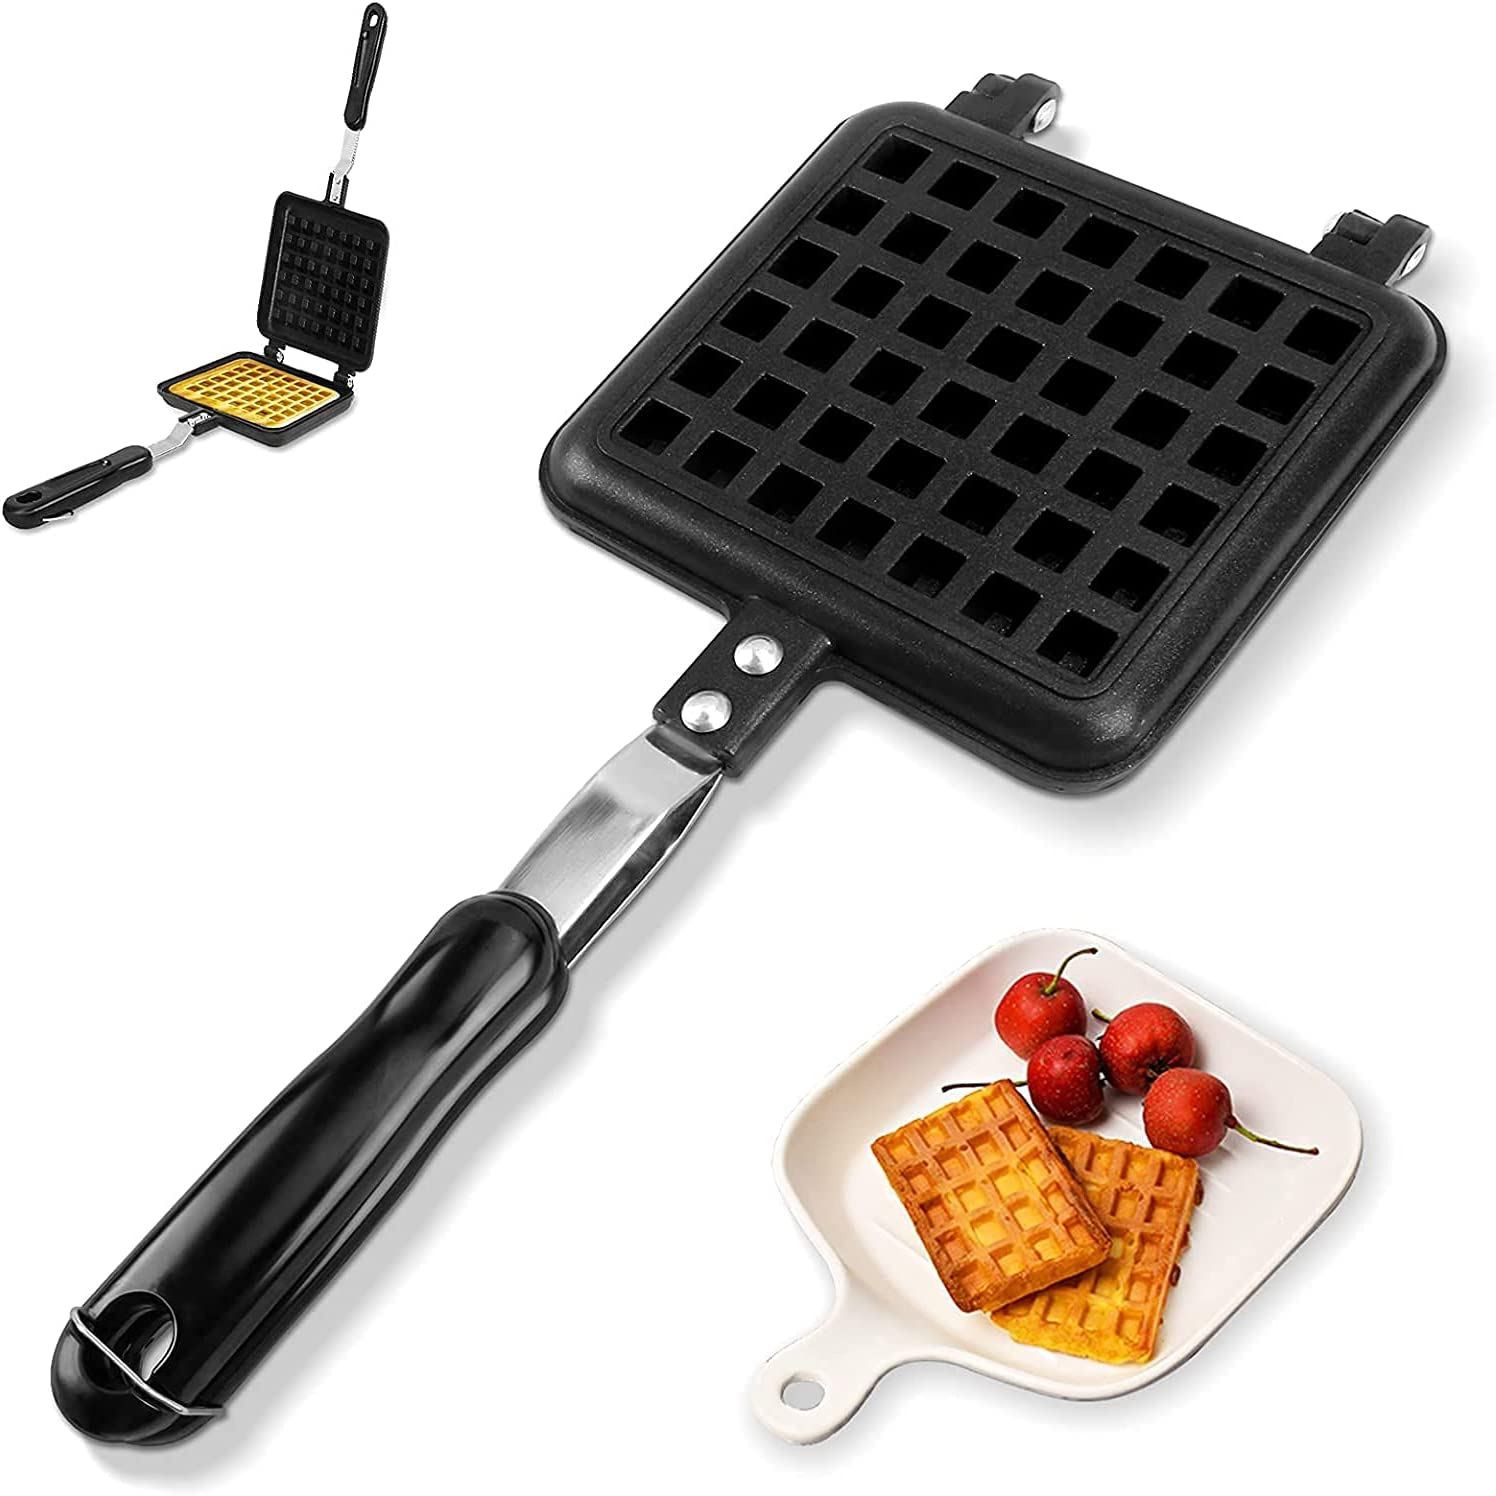 Non Stick Waffle Iron 11.8 5.7in Black Popular Excellence product Double-Sided Non-Stick x